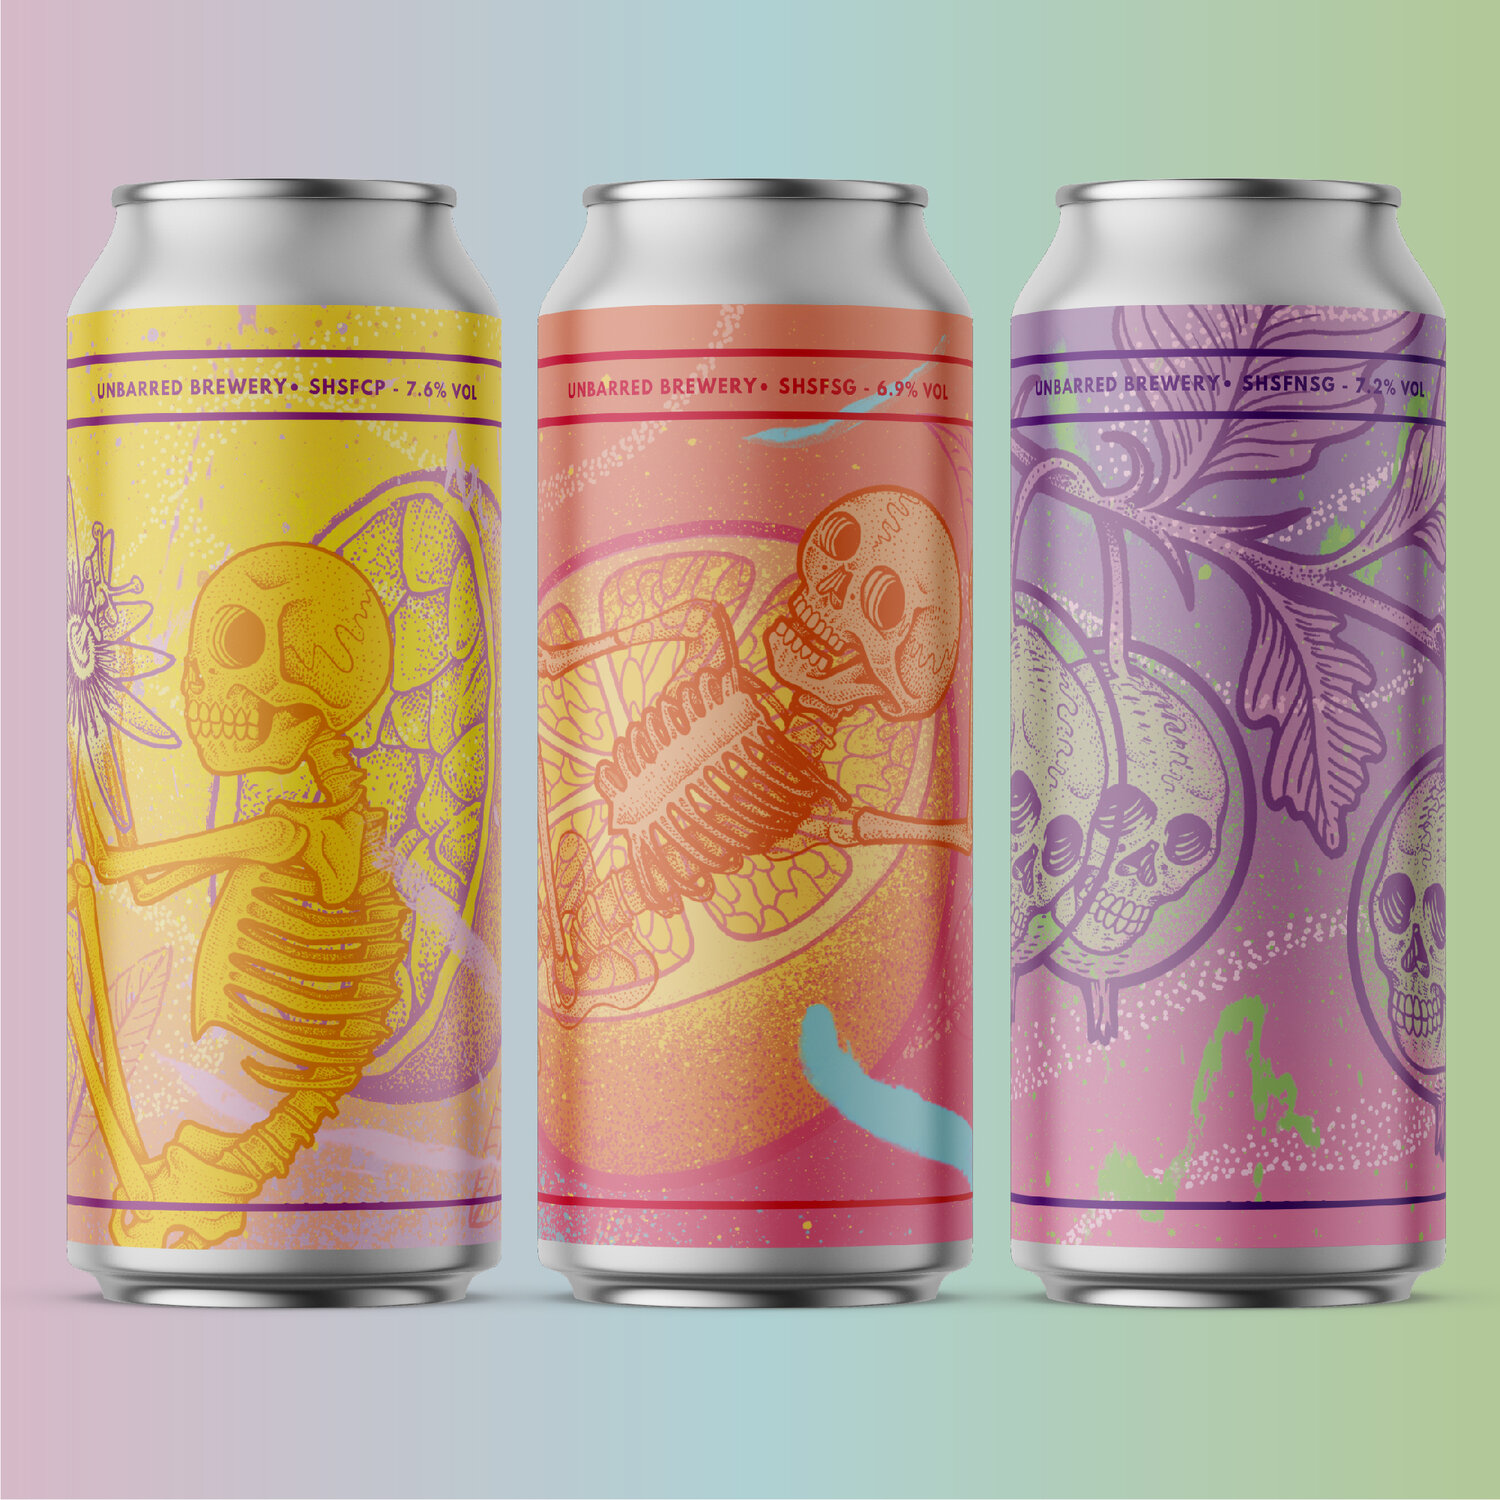 single-hop-single-fruit-series-unbarred-brewery-beer-online-new-launch-will-blood-brighton-artist.jpg